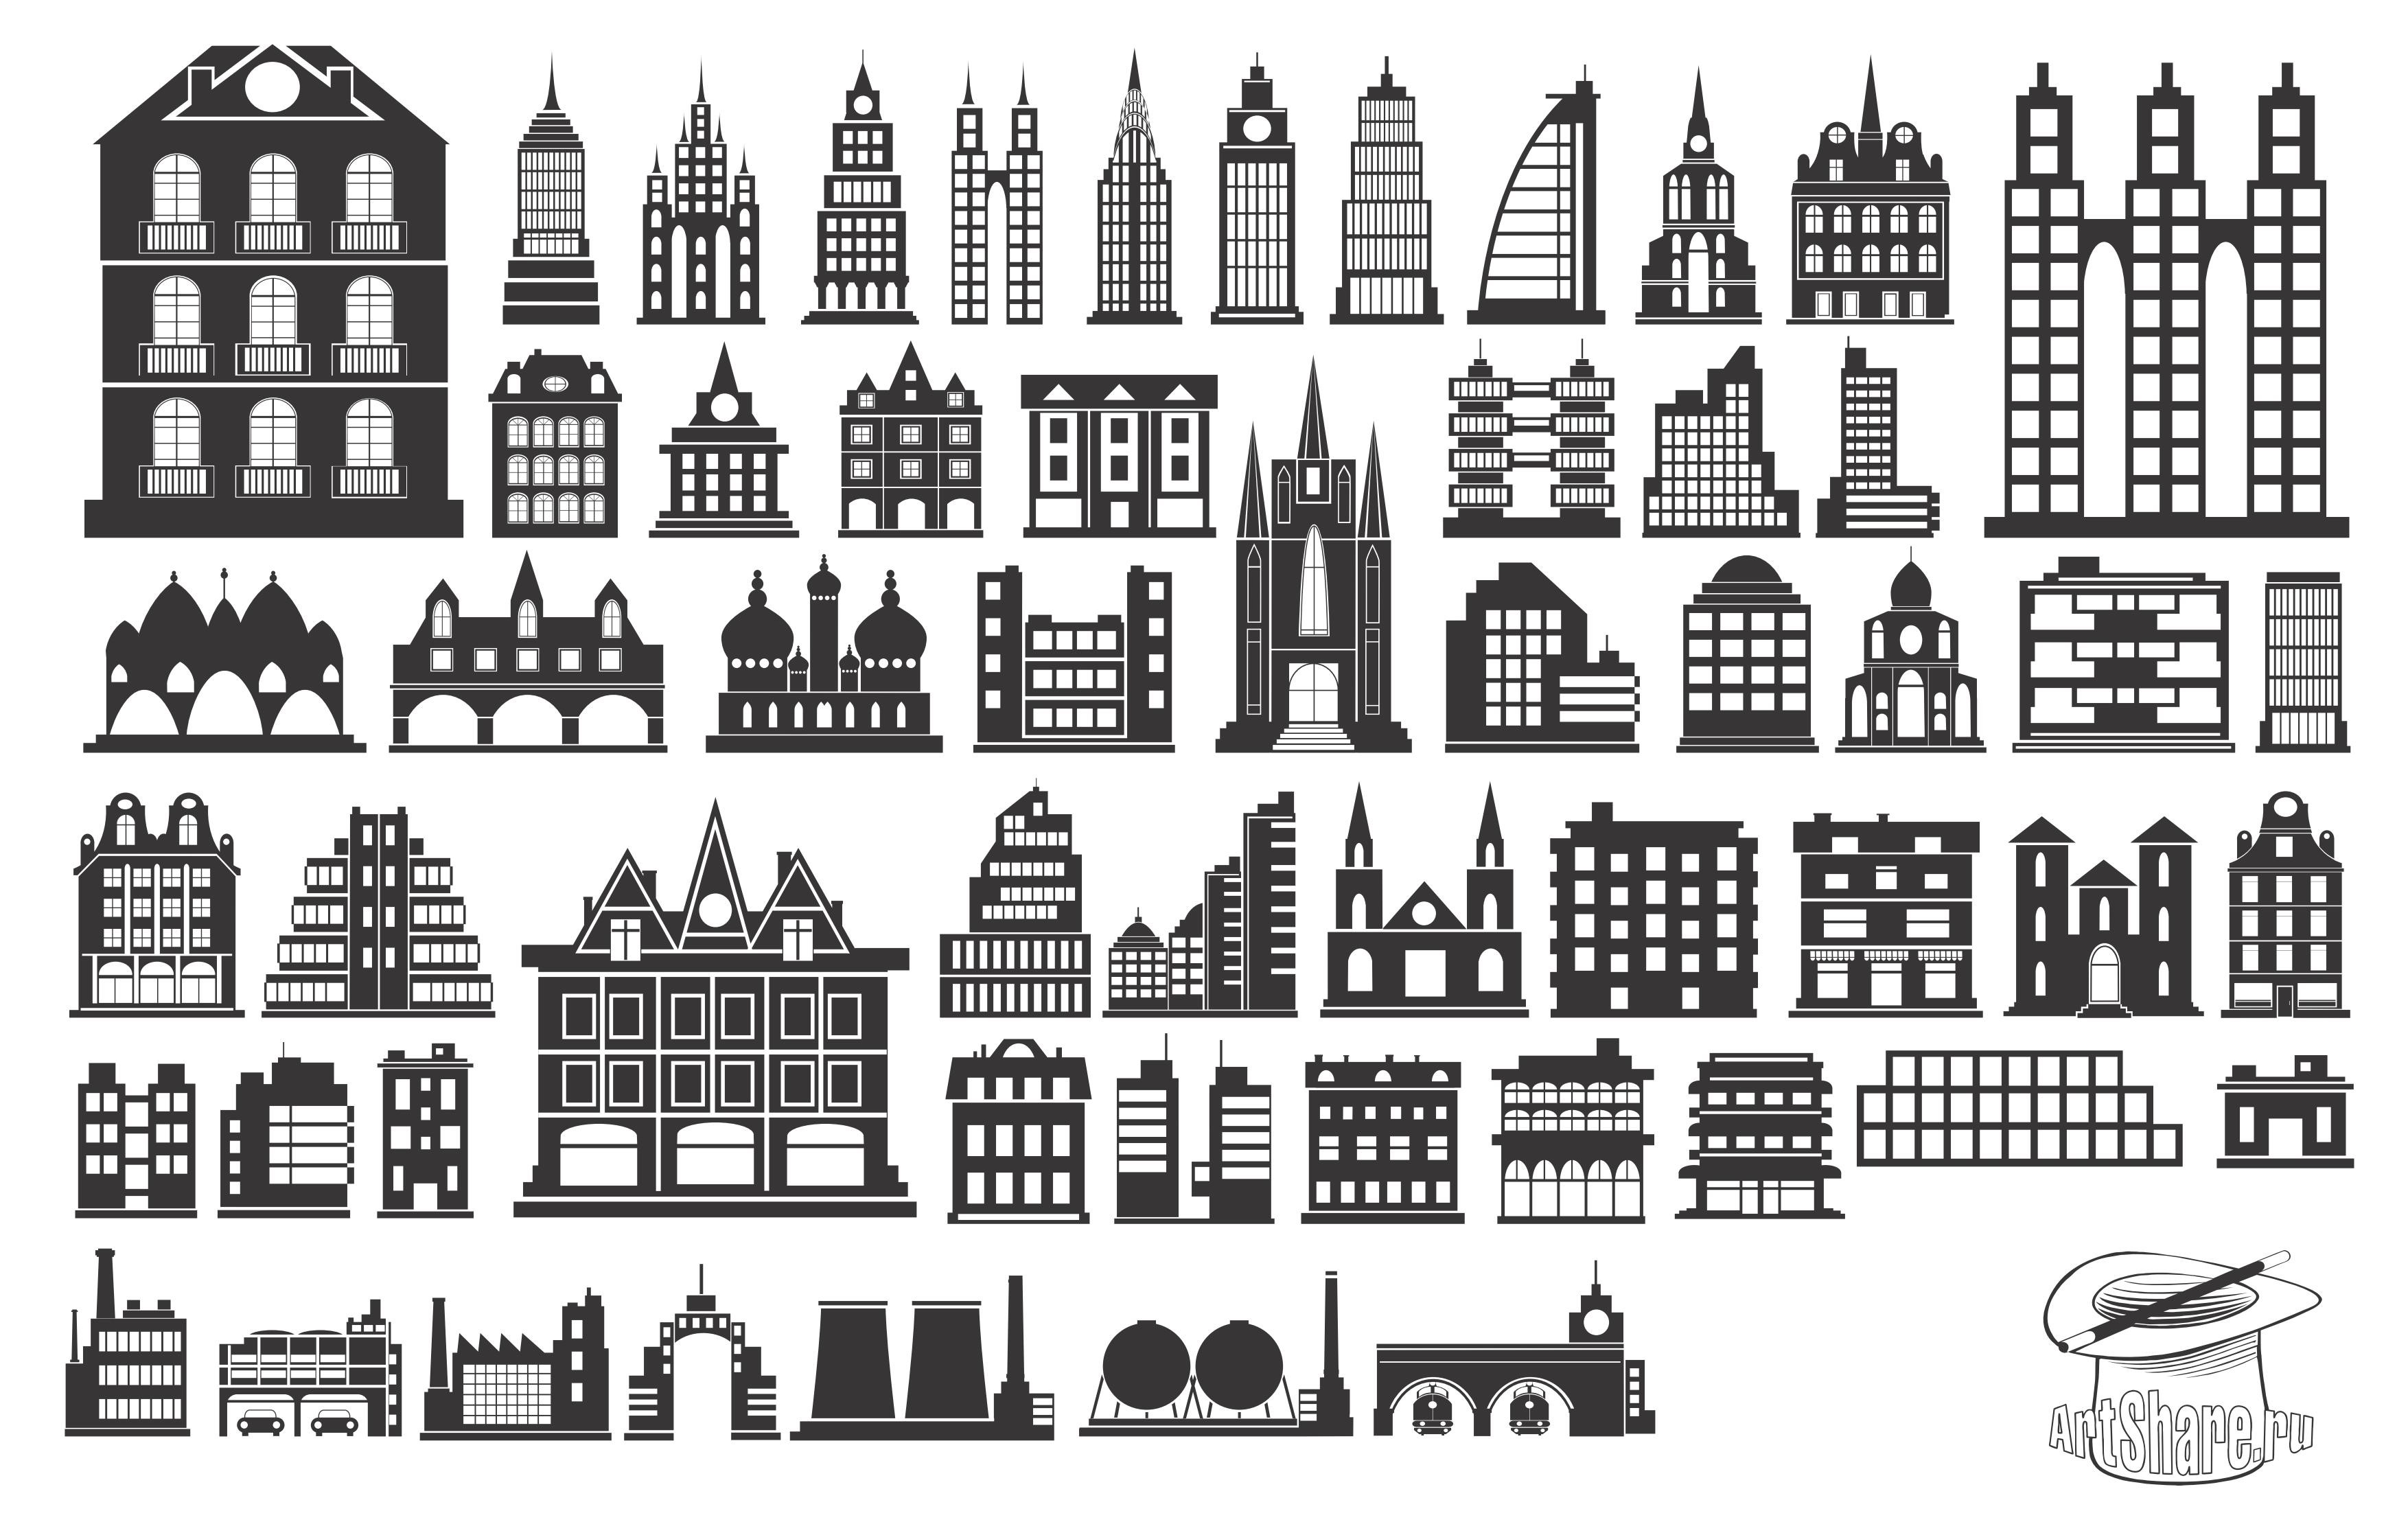 Building clipart vector free download banner royalty free Building clipart vector free download - ClipartFest banner royalty free